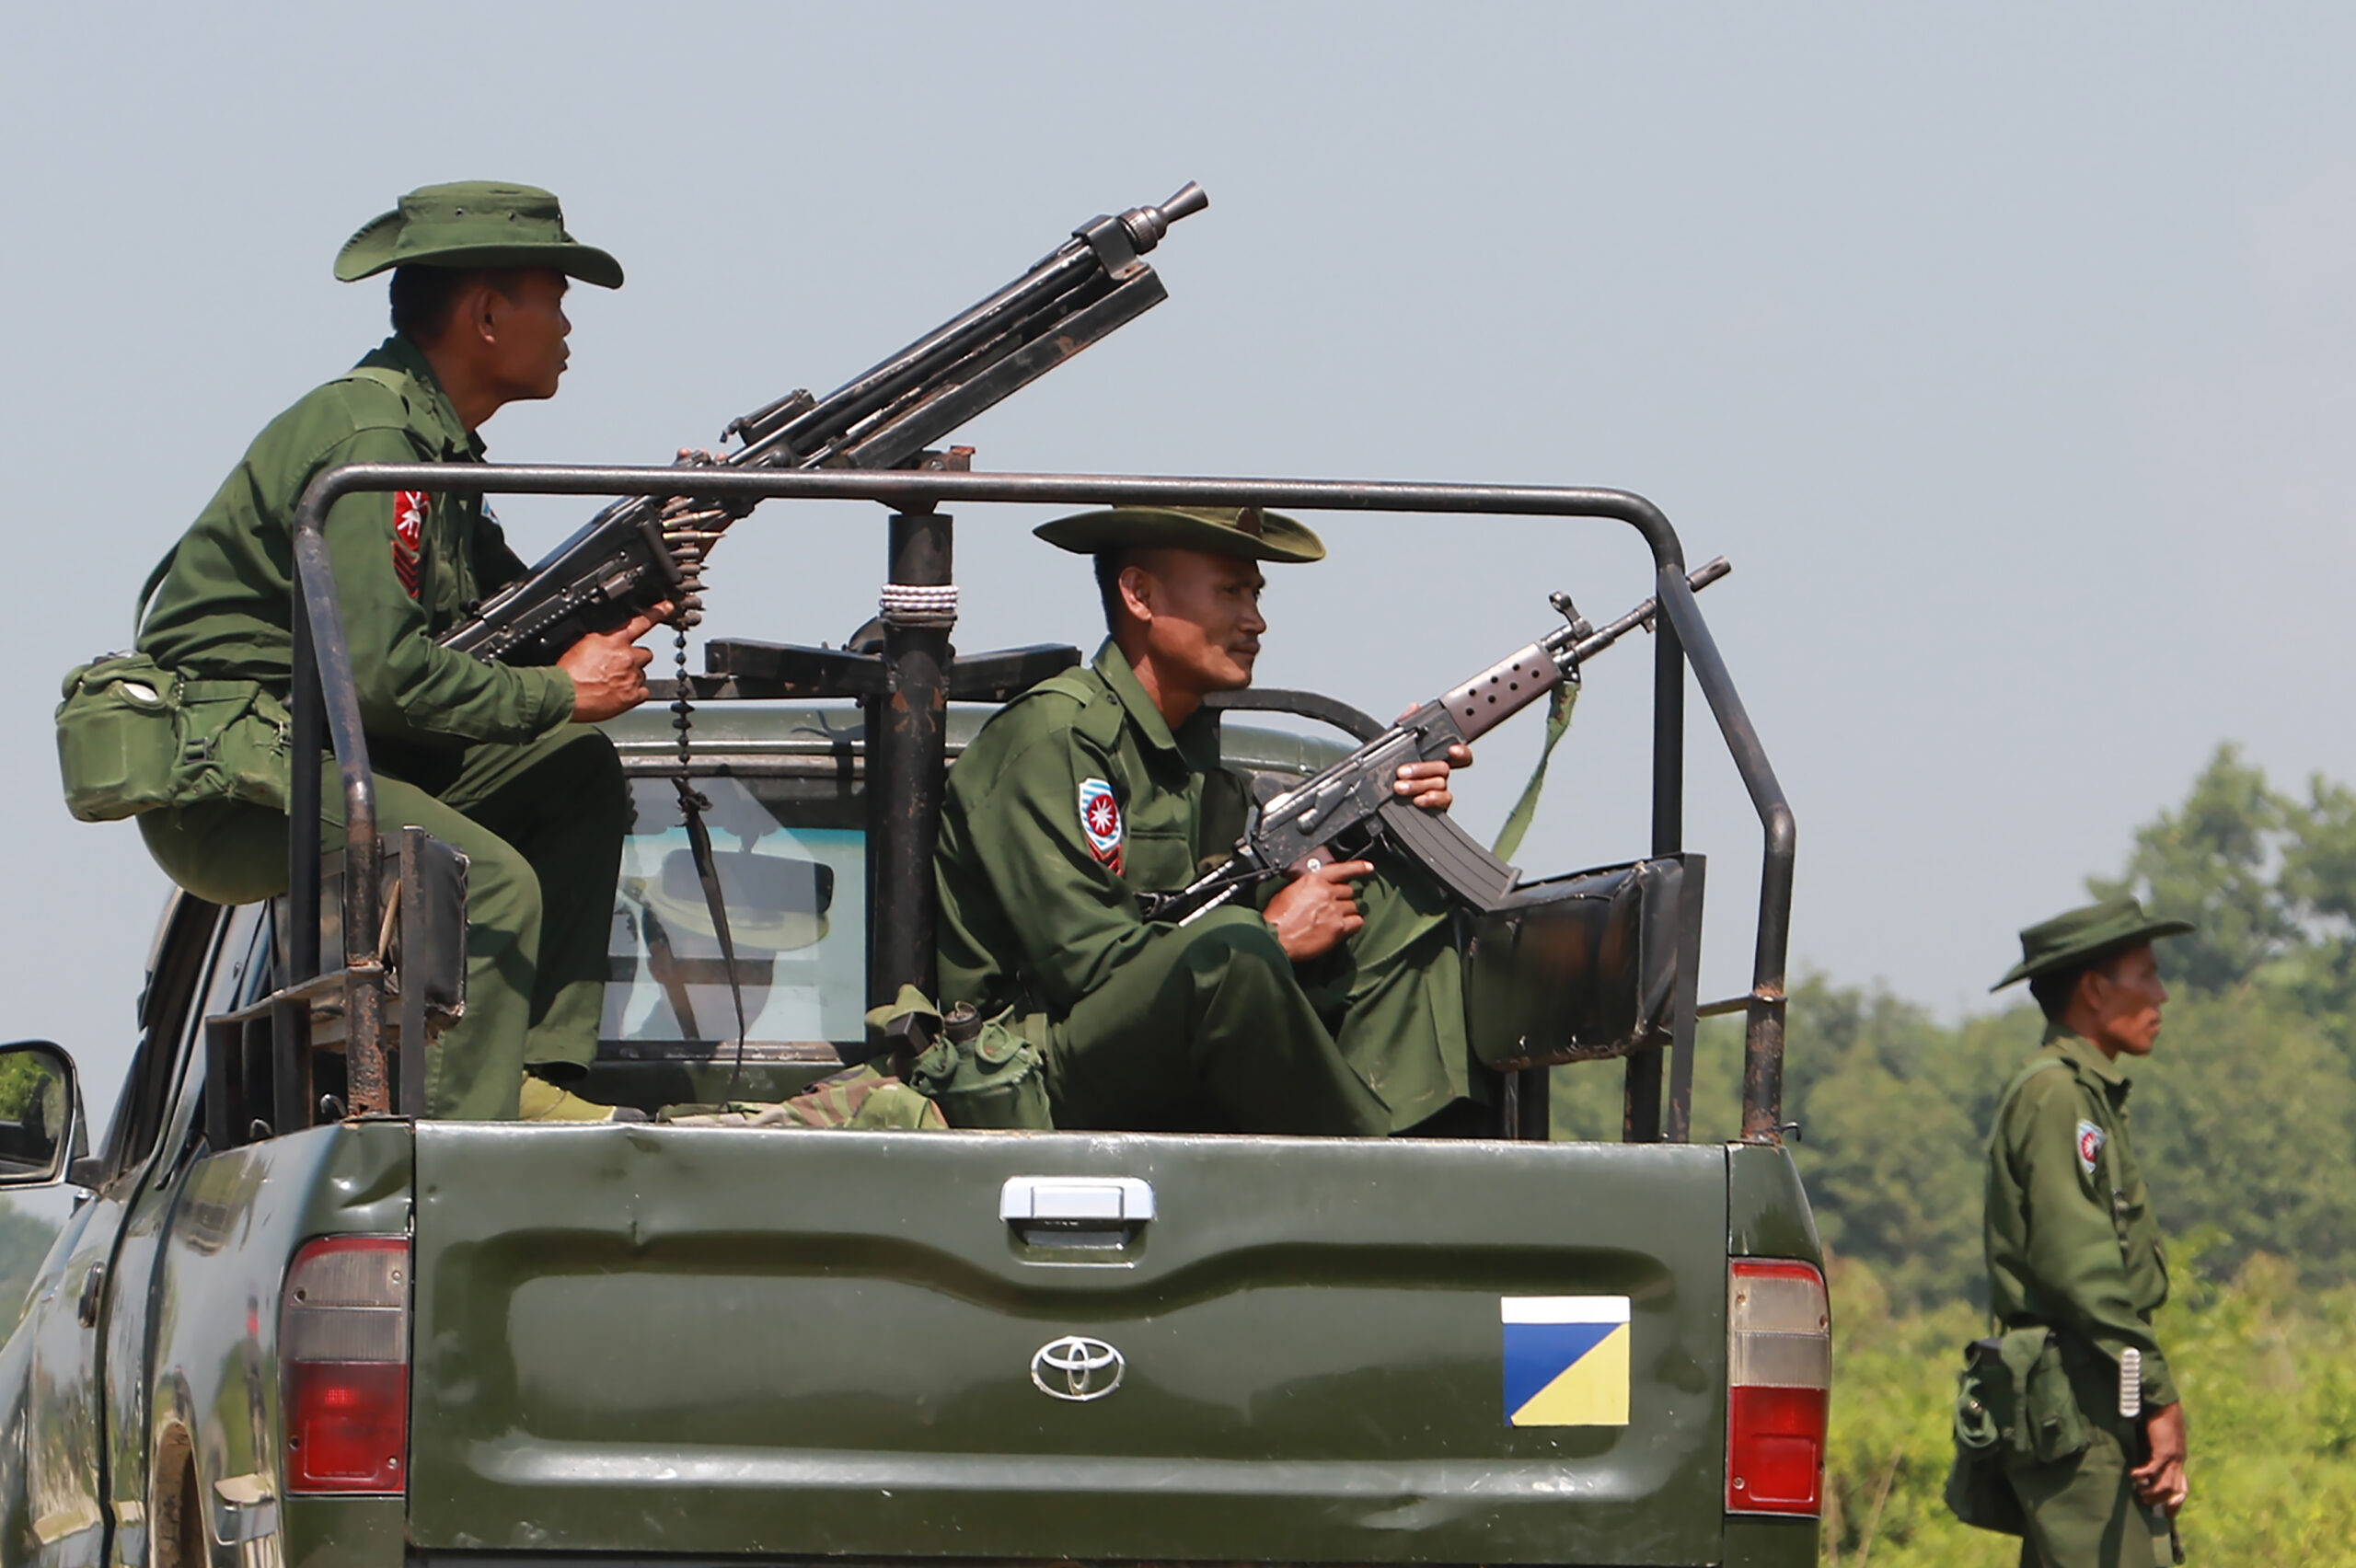 Myanmar: Aung San Suu Kyi, others arrested as military coup underway